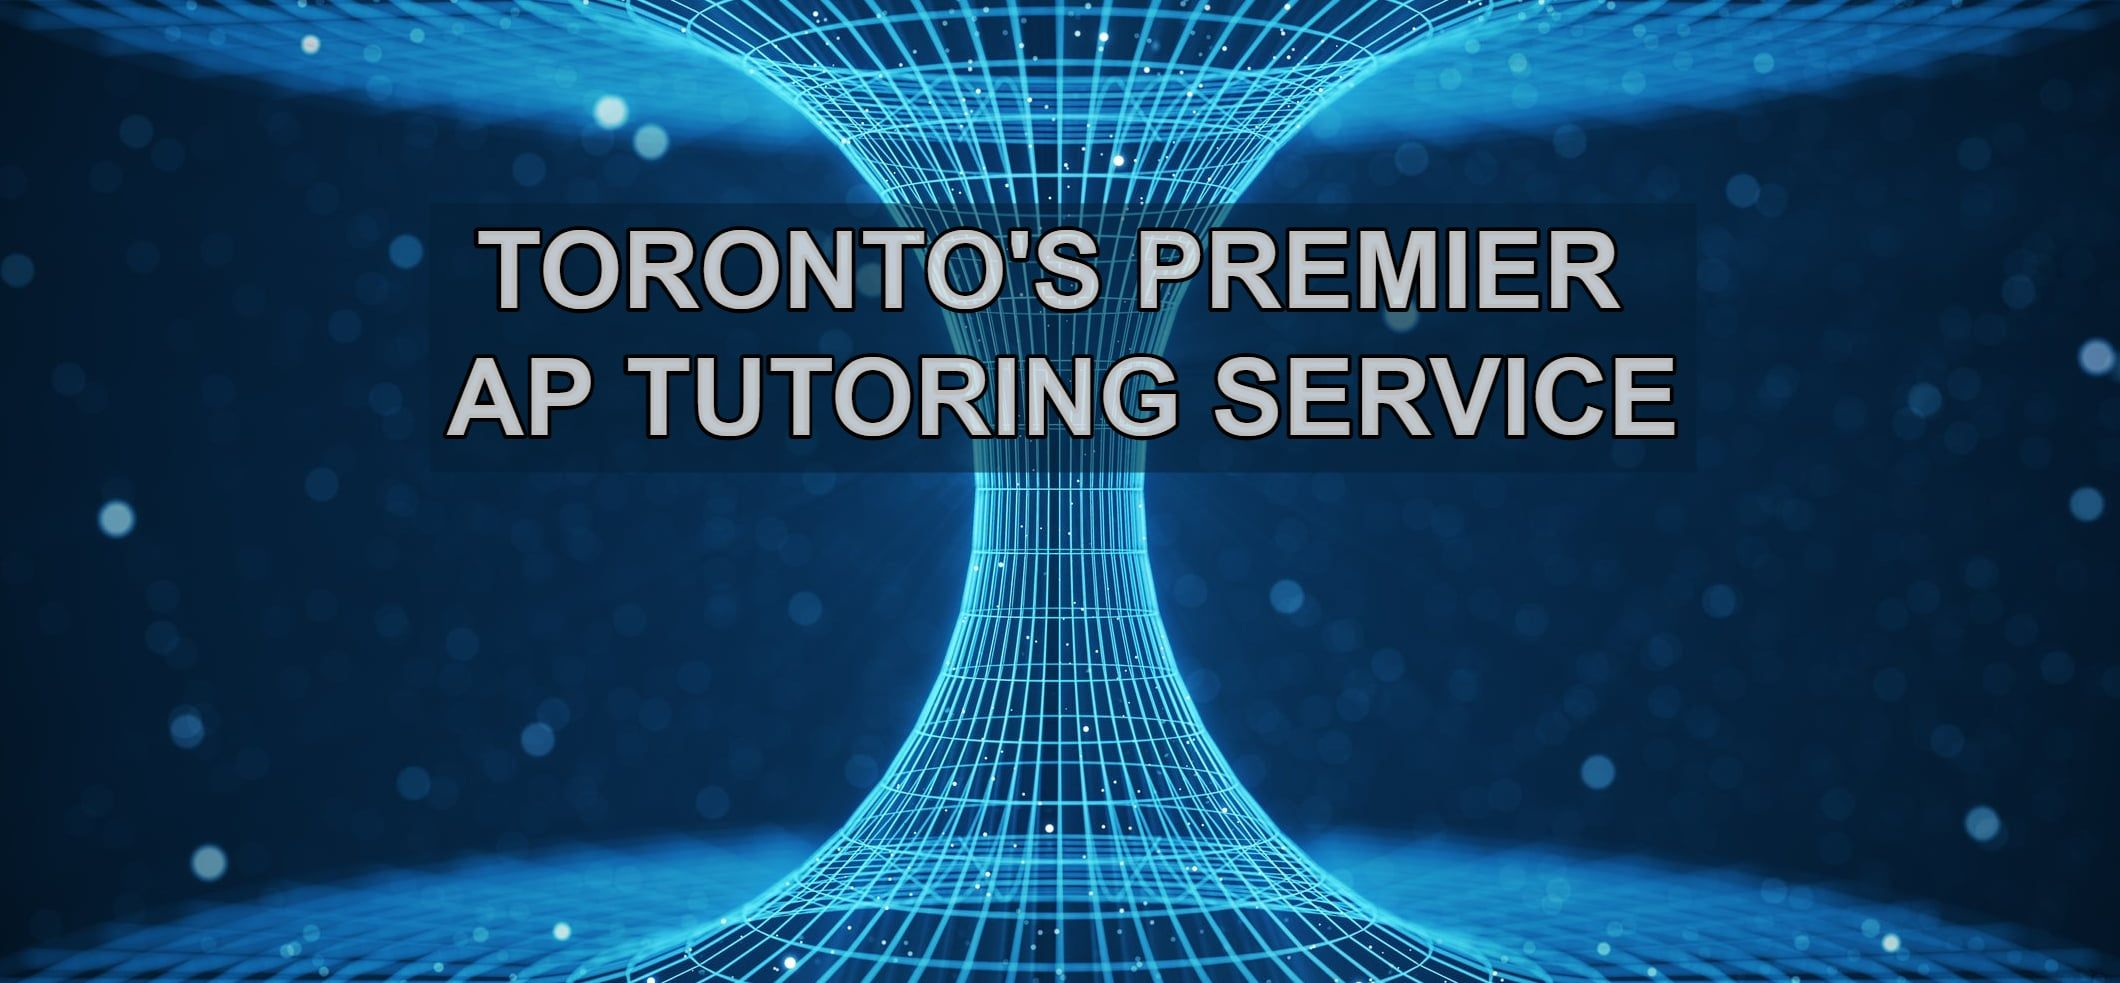 AP PHYSICS TUTORING SERVICE IN TORONTO WITH HACK YOUR COURSE AP AND IB TUTORING SERVICE